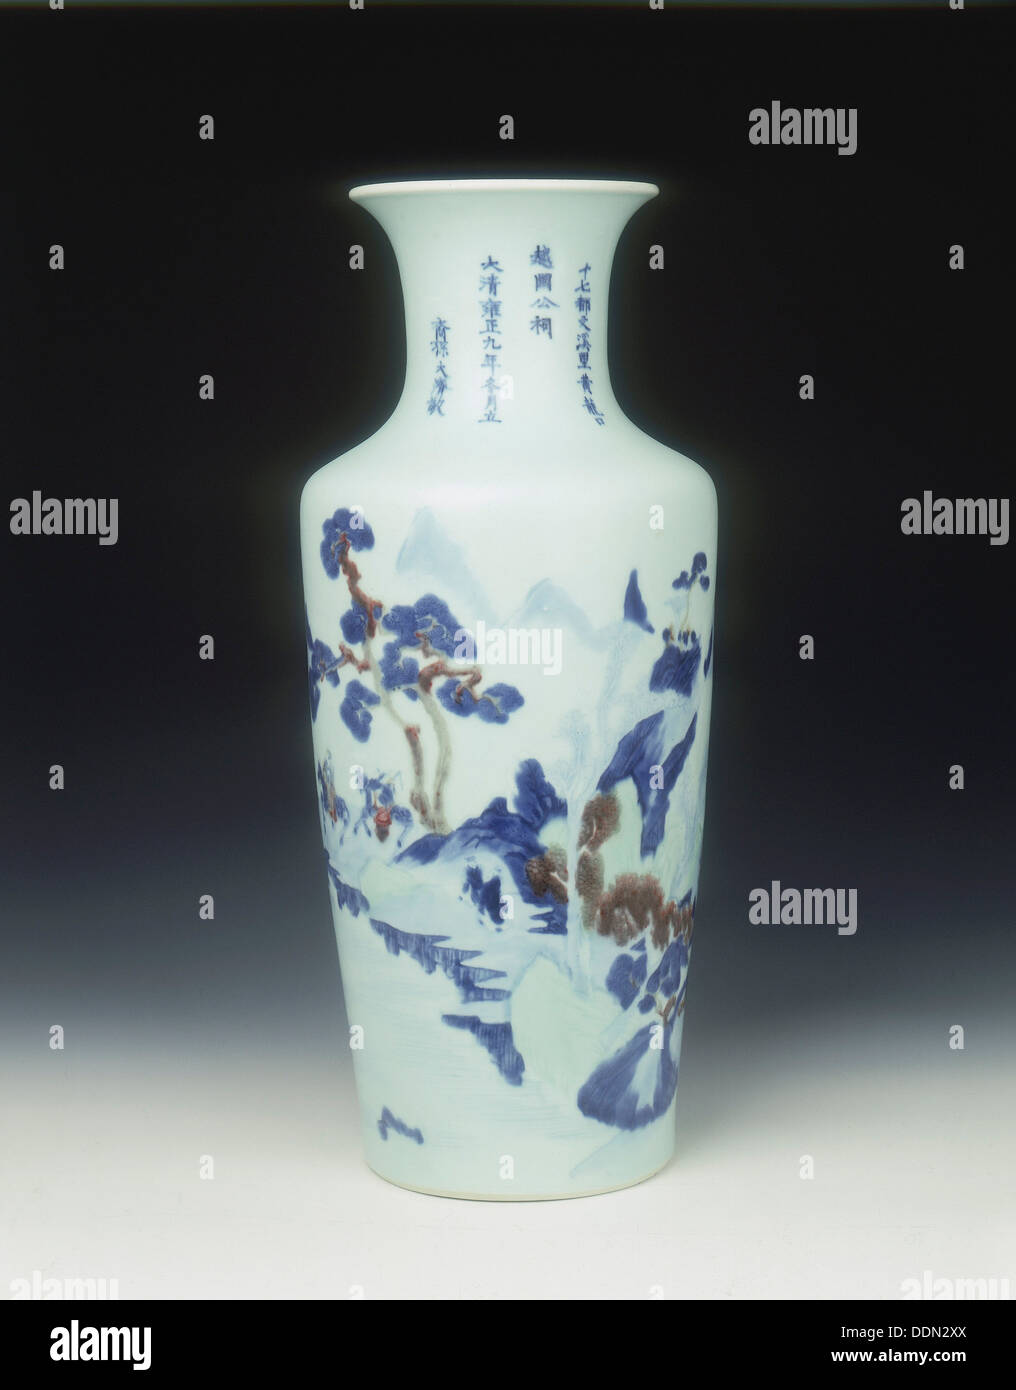 Vase with landscape, Yongzheng period, Qing dynasty, China